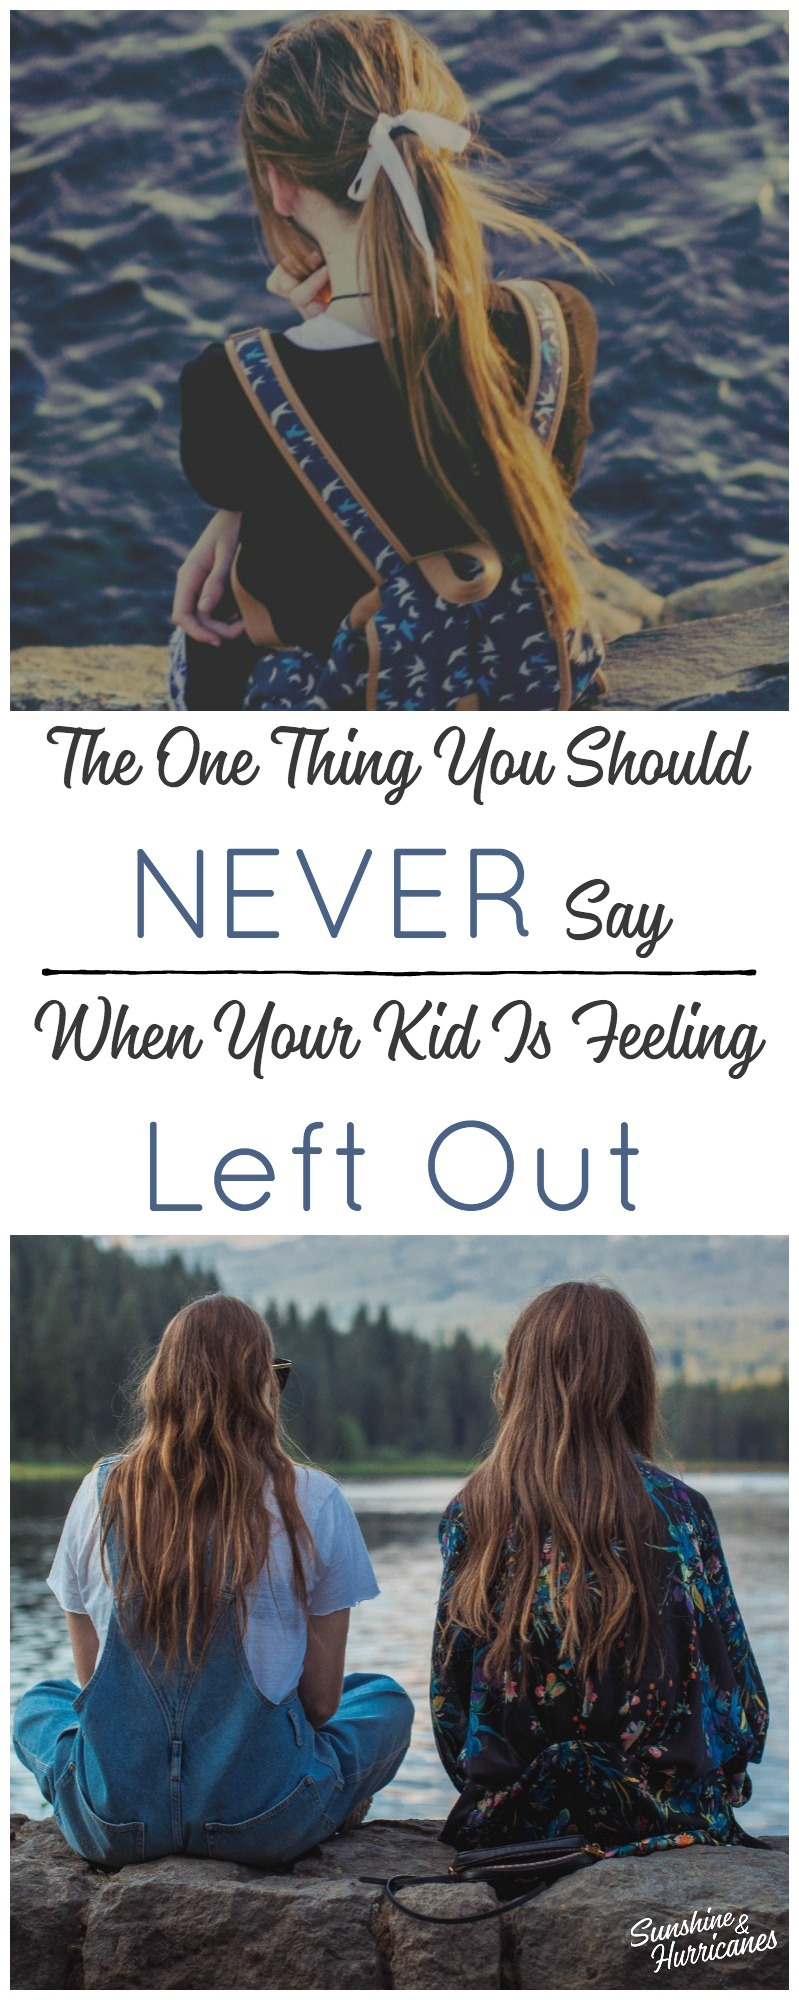 Feeling left out is common for kids. What we say to them in these situations matters and will shape how they deal with many other childhood challenges.